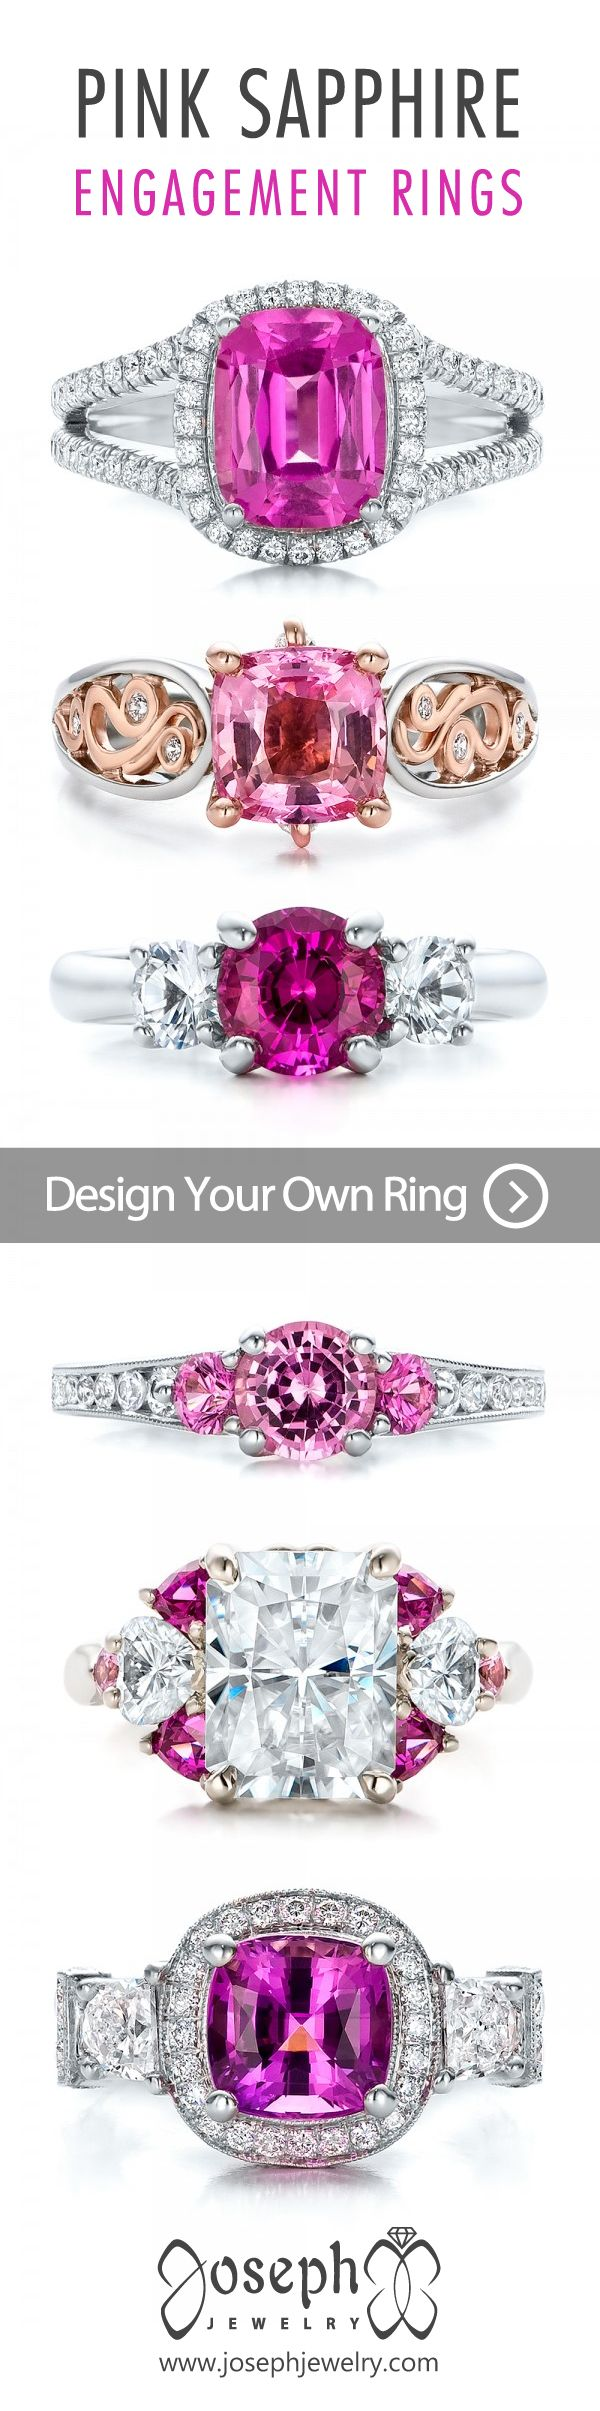 Design Your Own Pink Sapphire Engagement Ring! Sapphires Are One Of The  Best Choices For